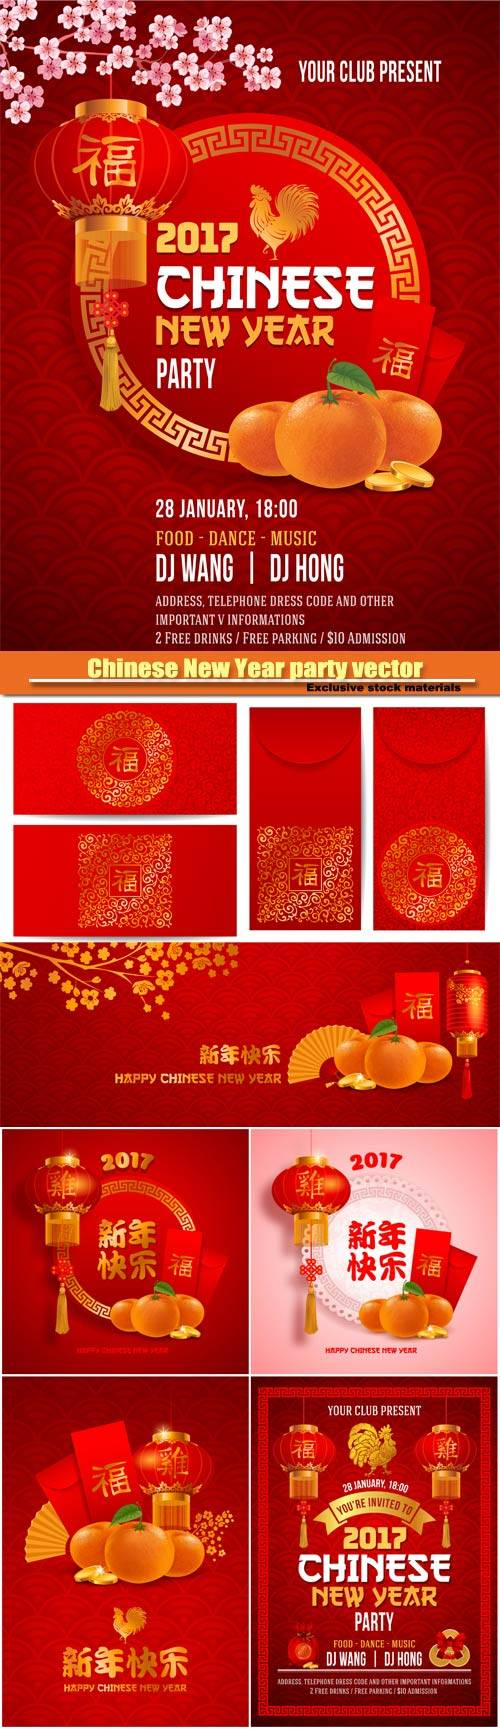 Chinese New Year party vector background